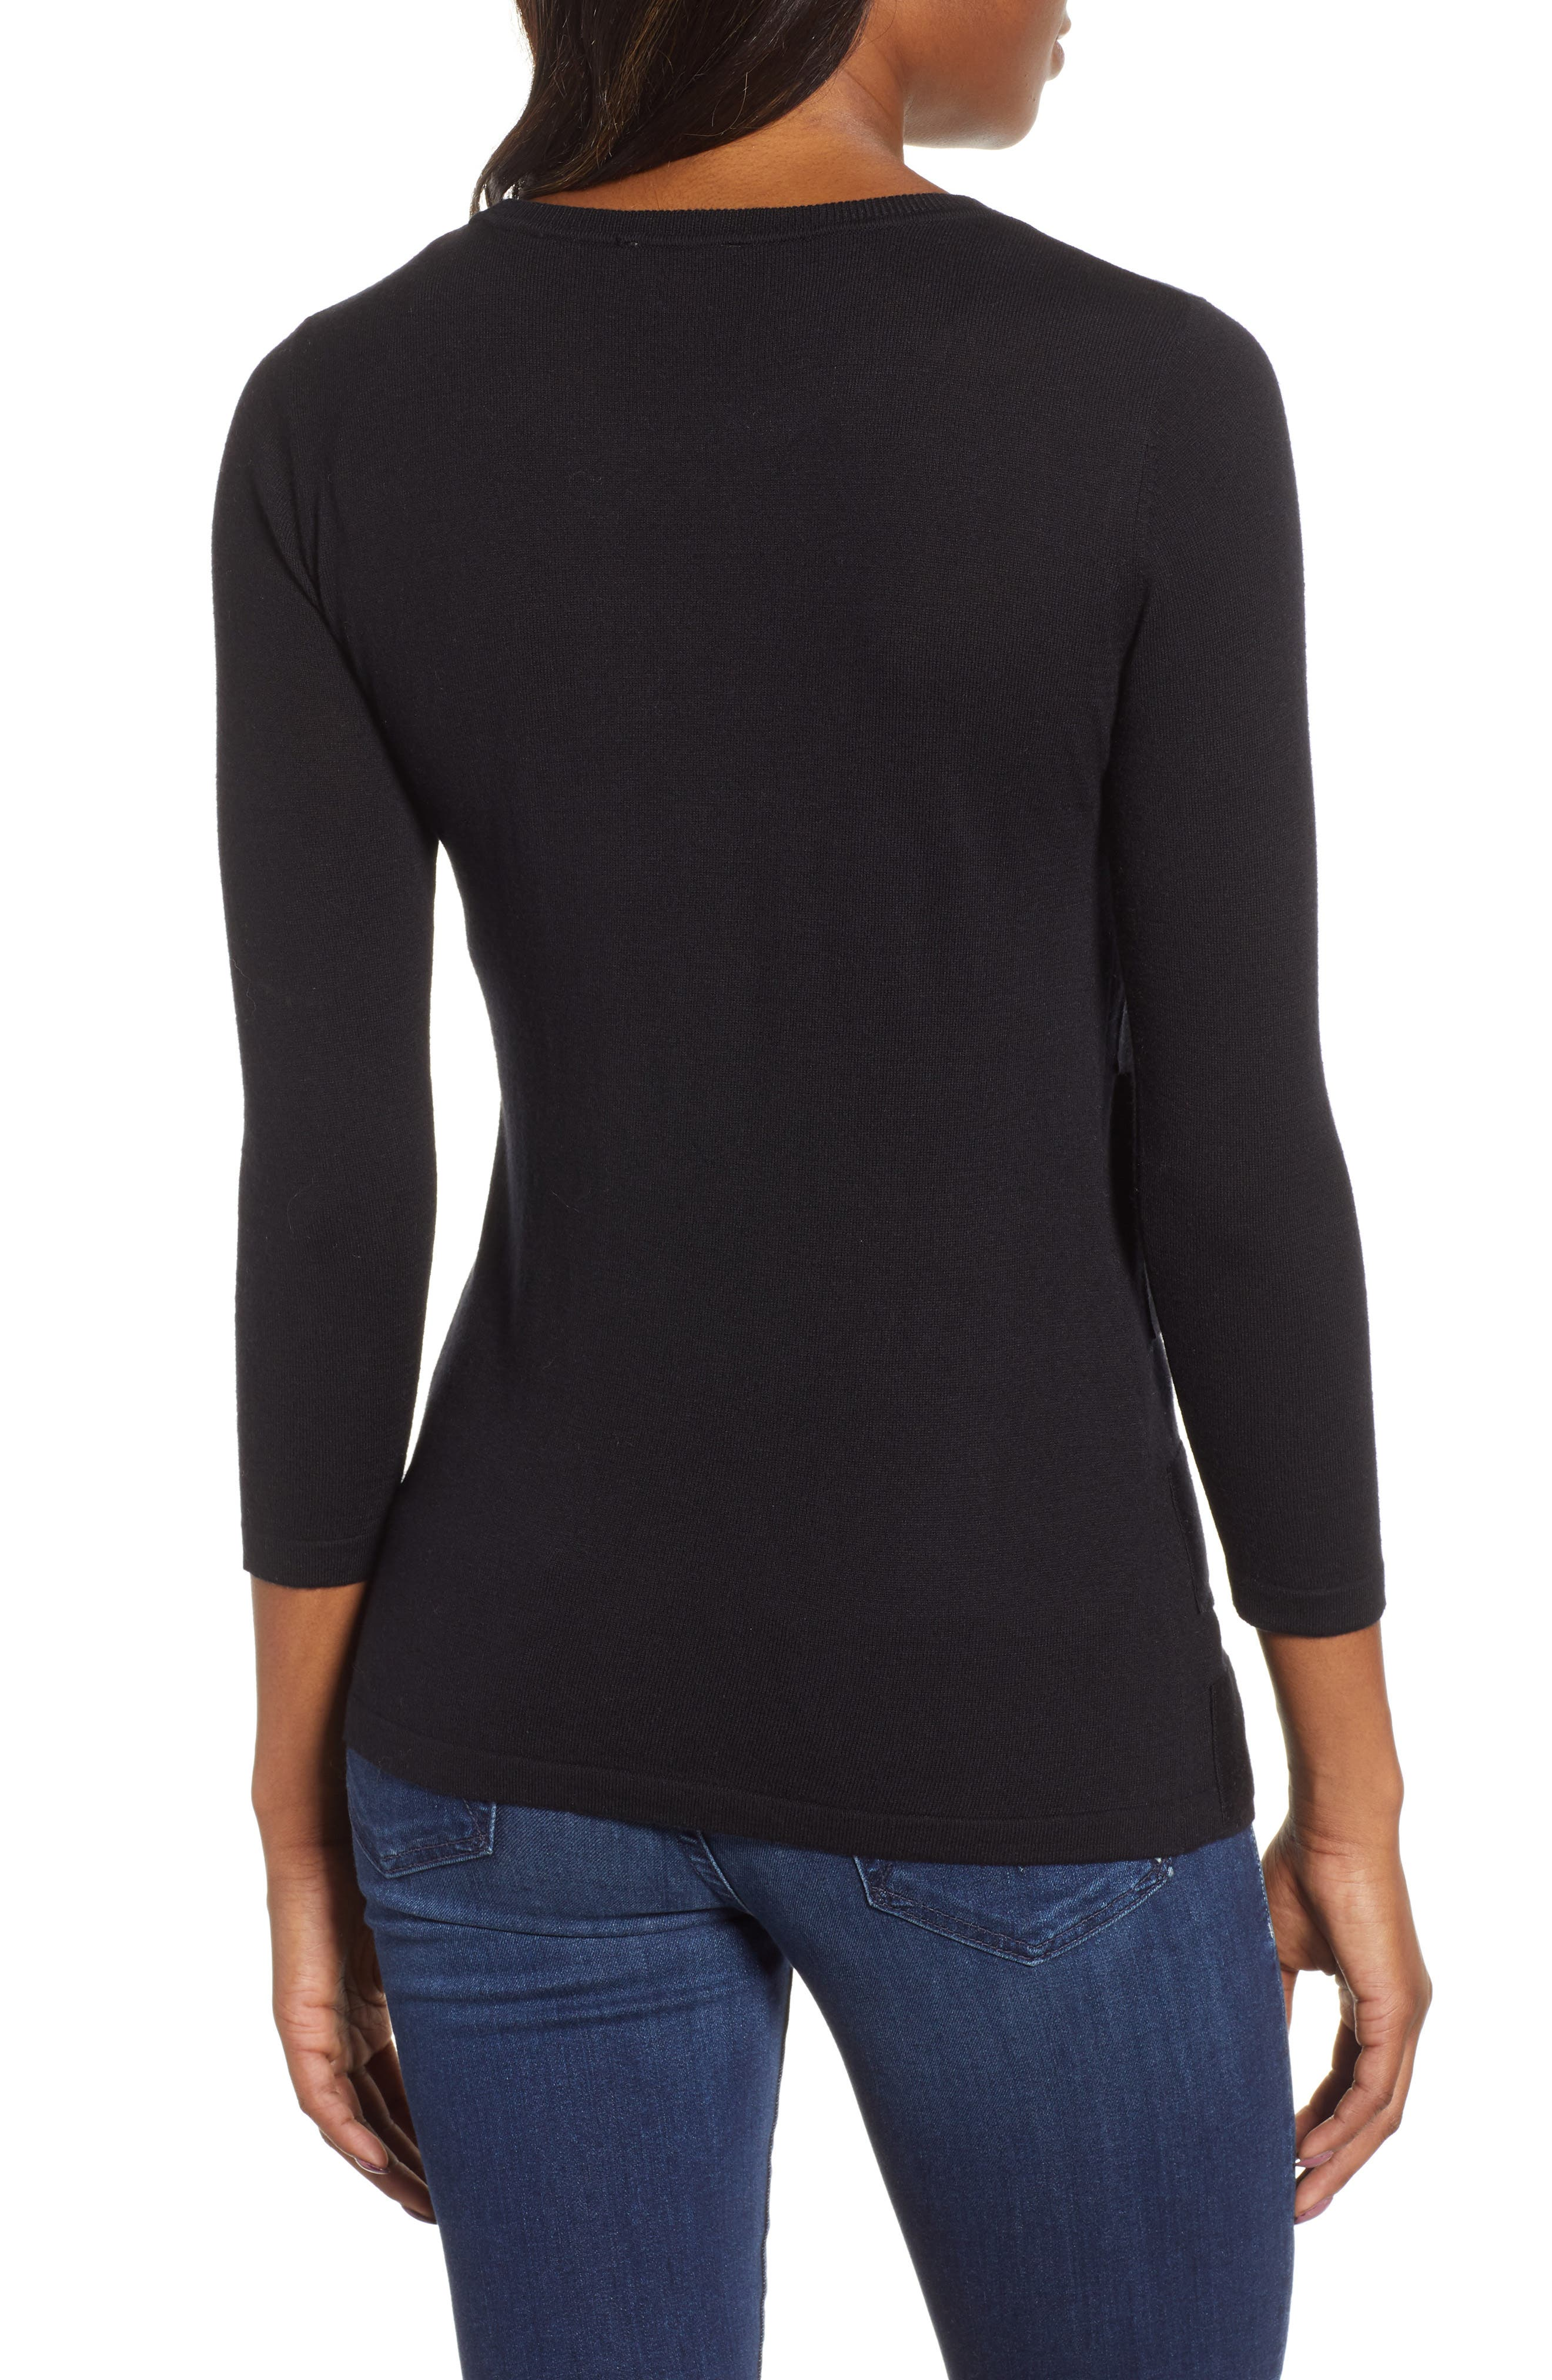 Zigzag Sweater,                             Alternate thumbnail 3, color,                             001